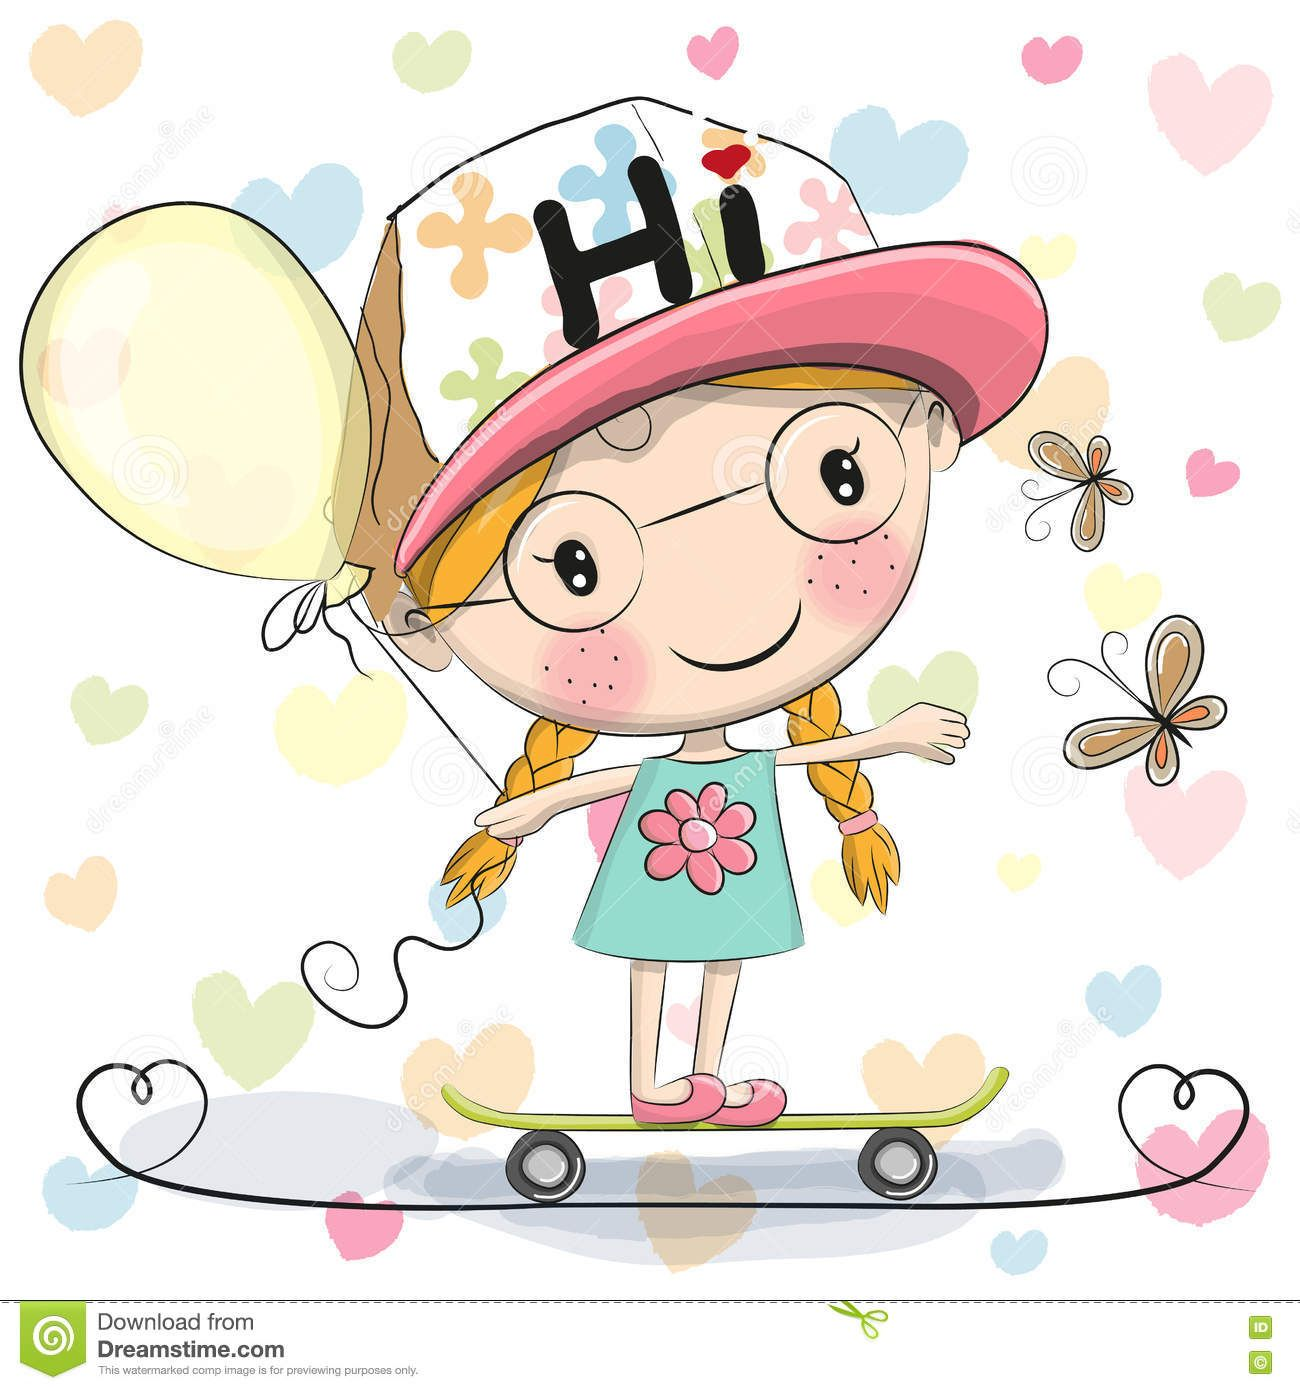 cute cartoon girl with balloon - download from over 46 million high